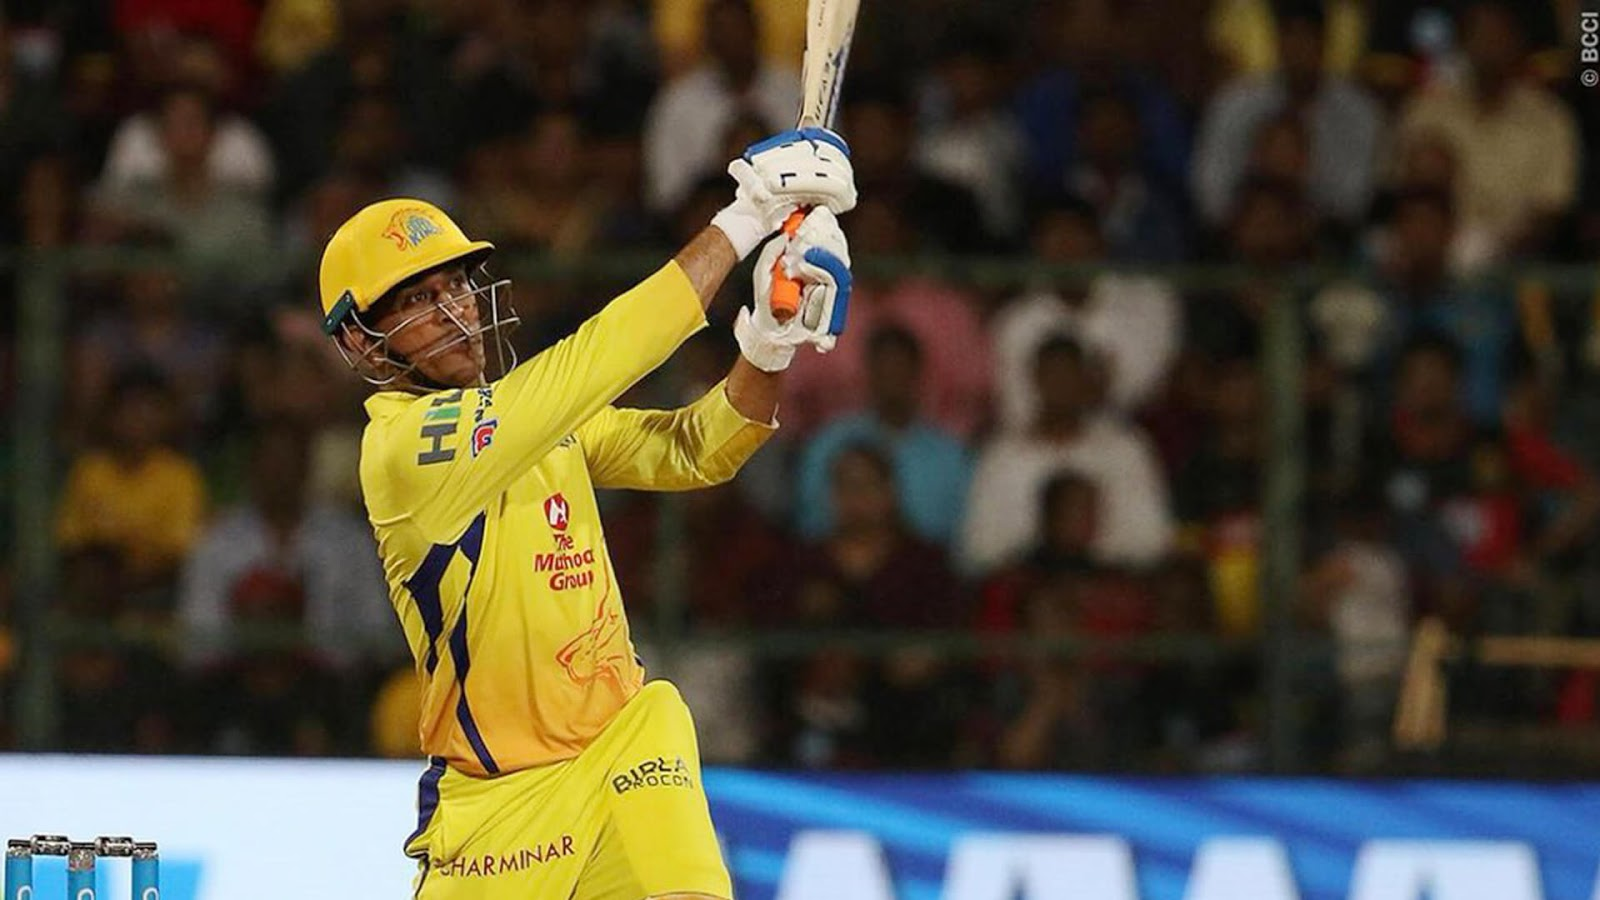 Ms Dhoni Hd Wallpapers Csk: Chennai Super Kings HD Wallpapers Download Free 1080p